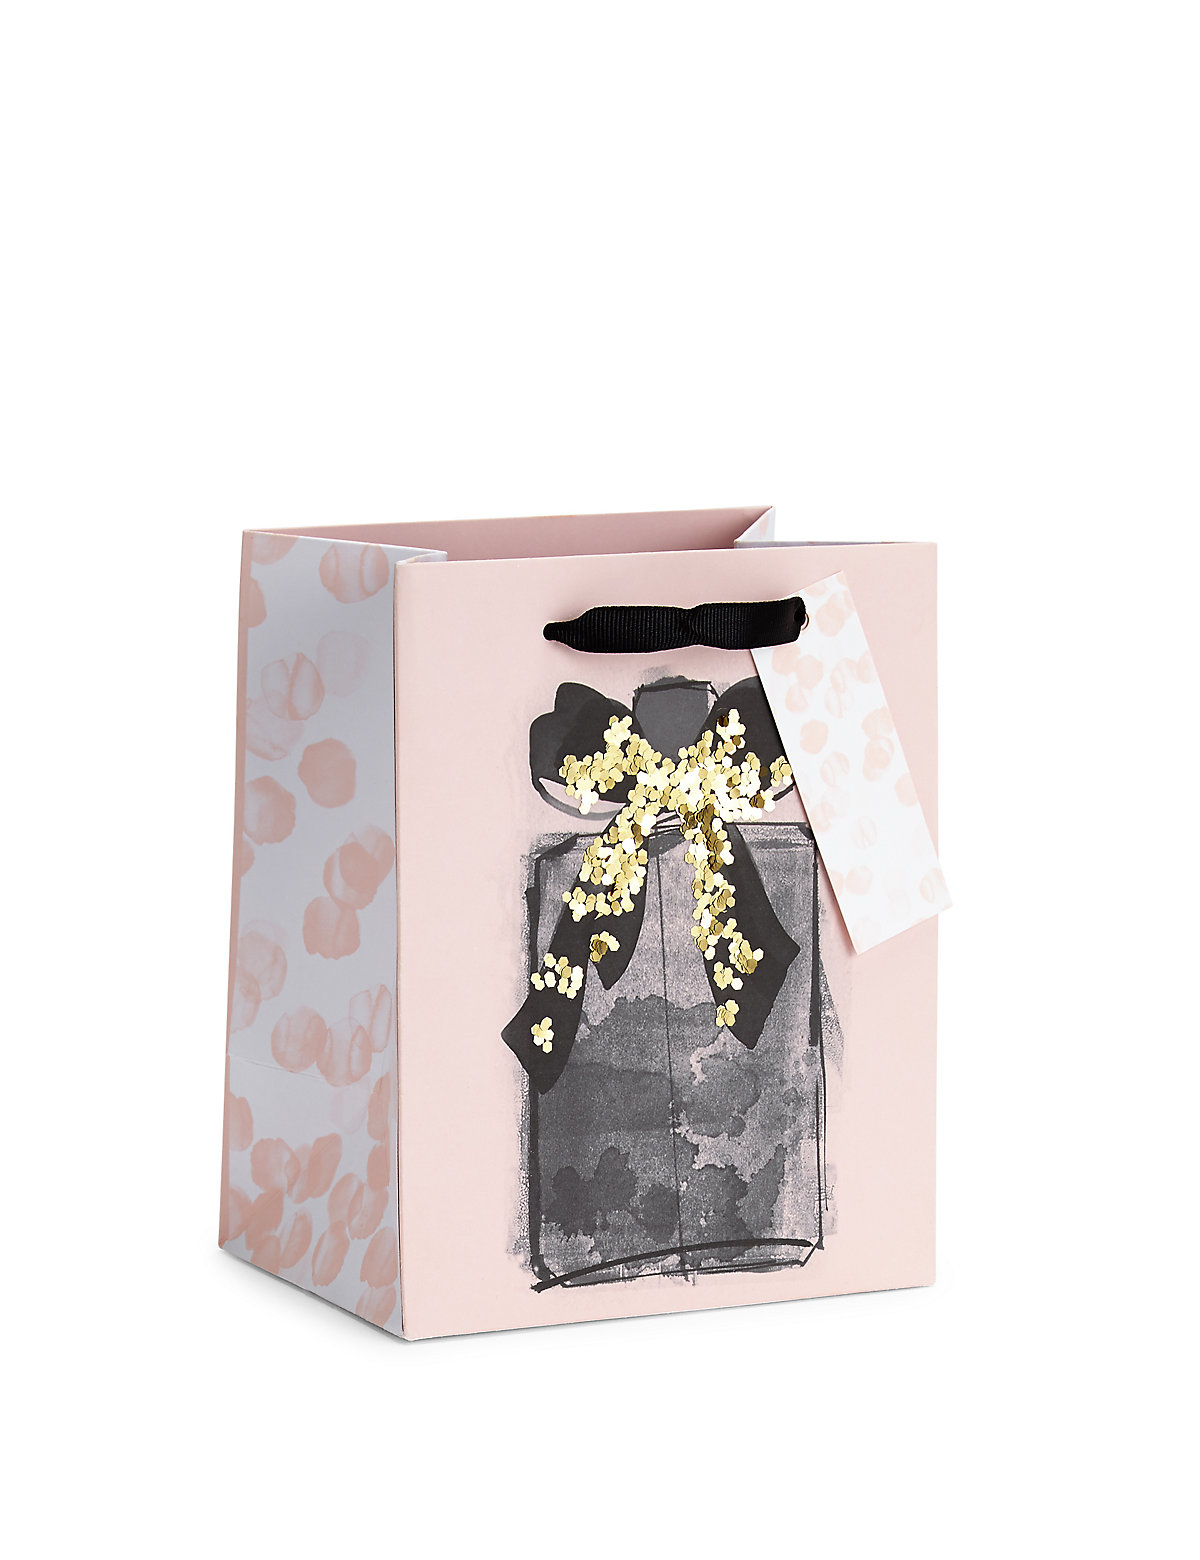 Perfume Bottle Small Gift Bag